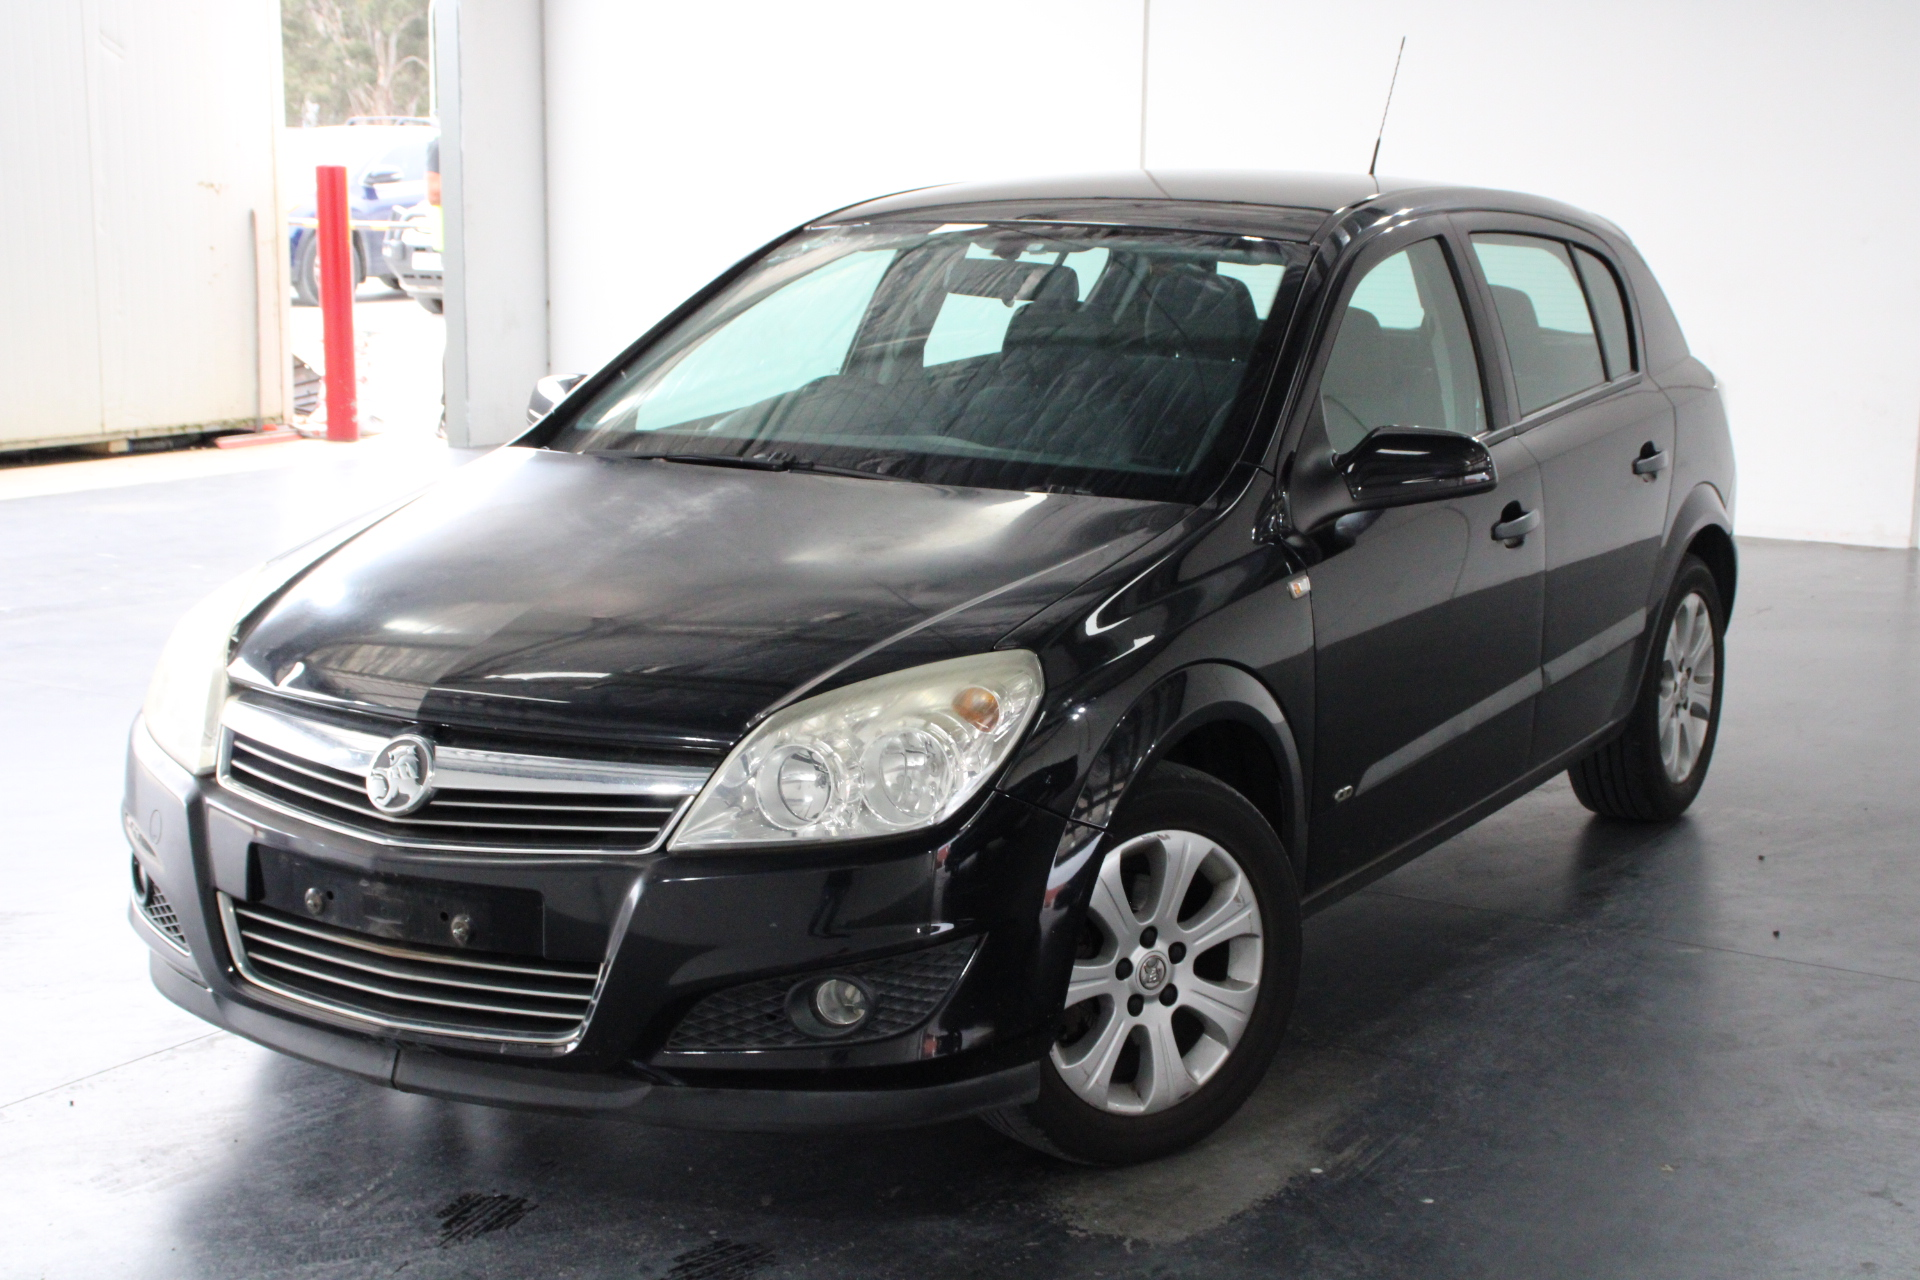 2008 Holden Astra CD 60th Anniversary AH Automatic Hatchback